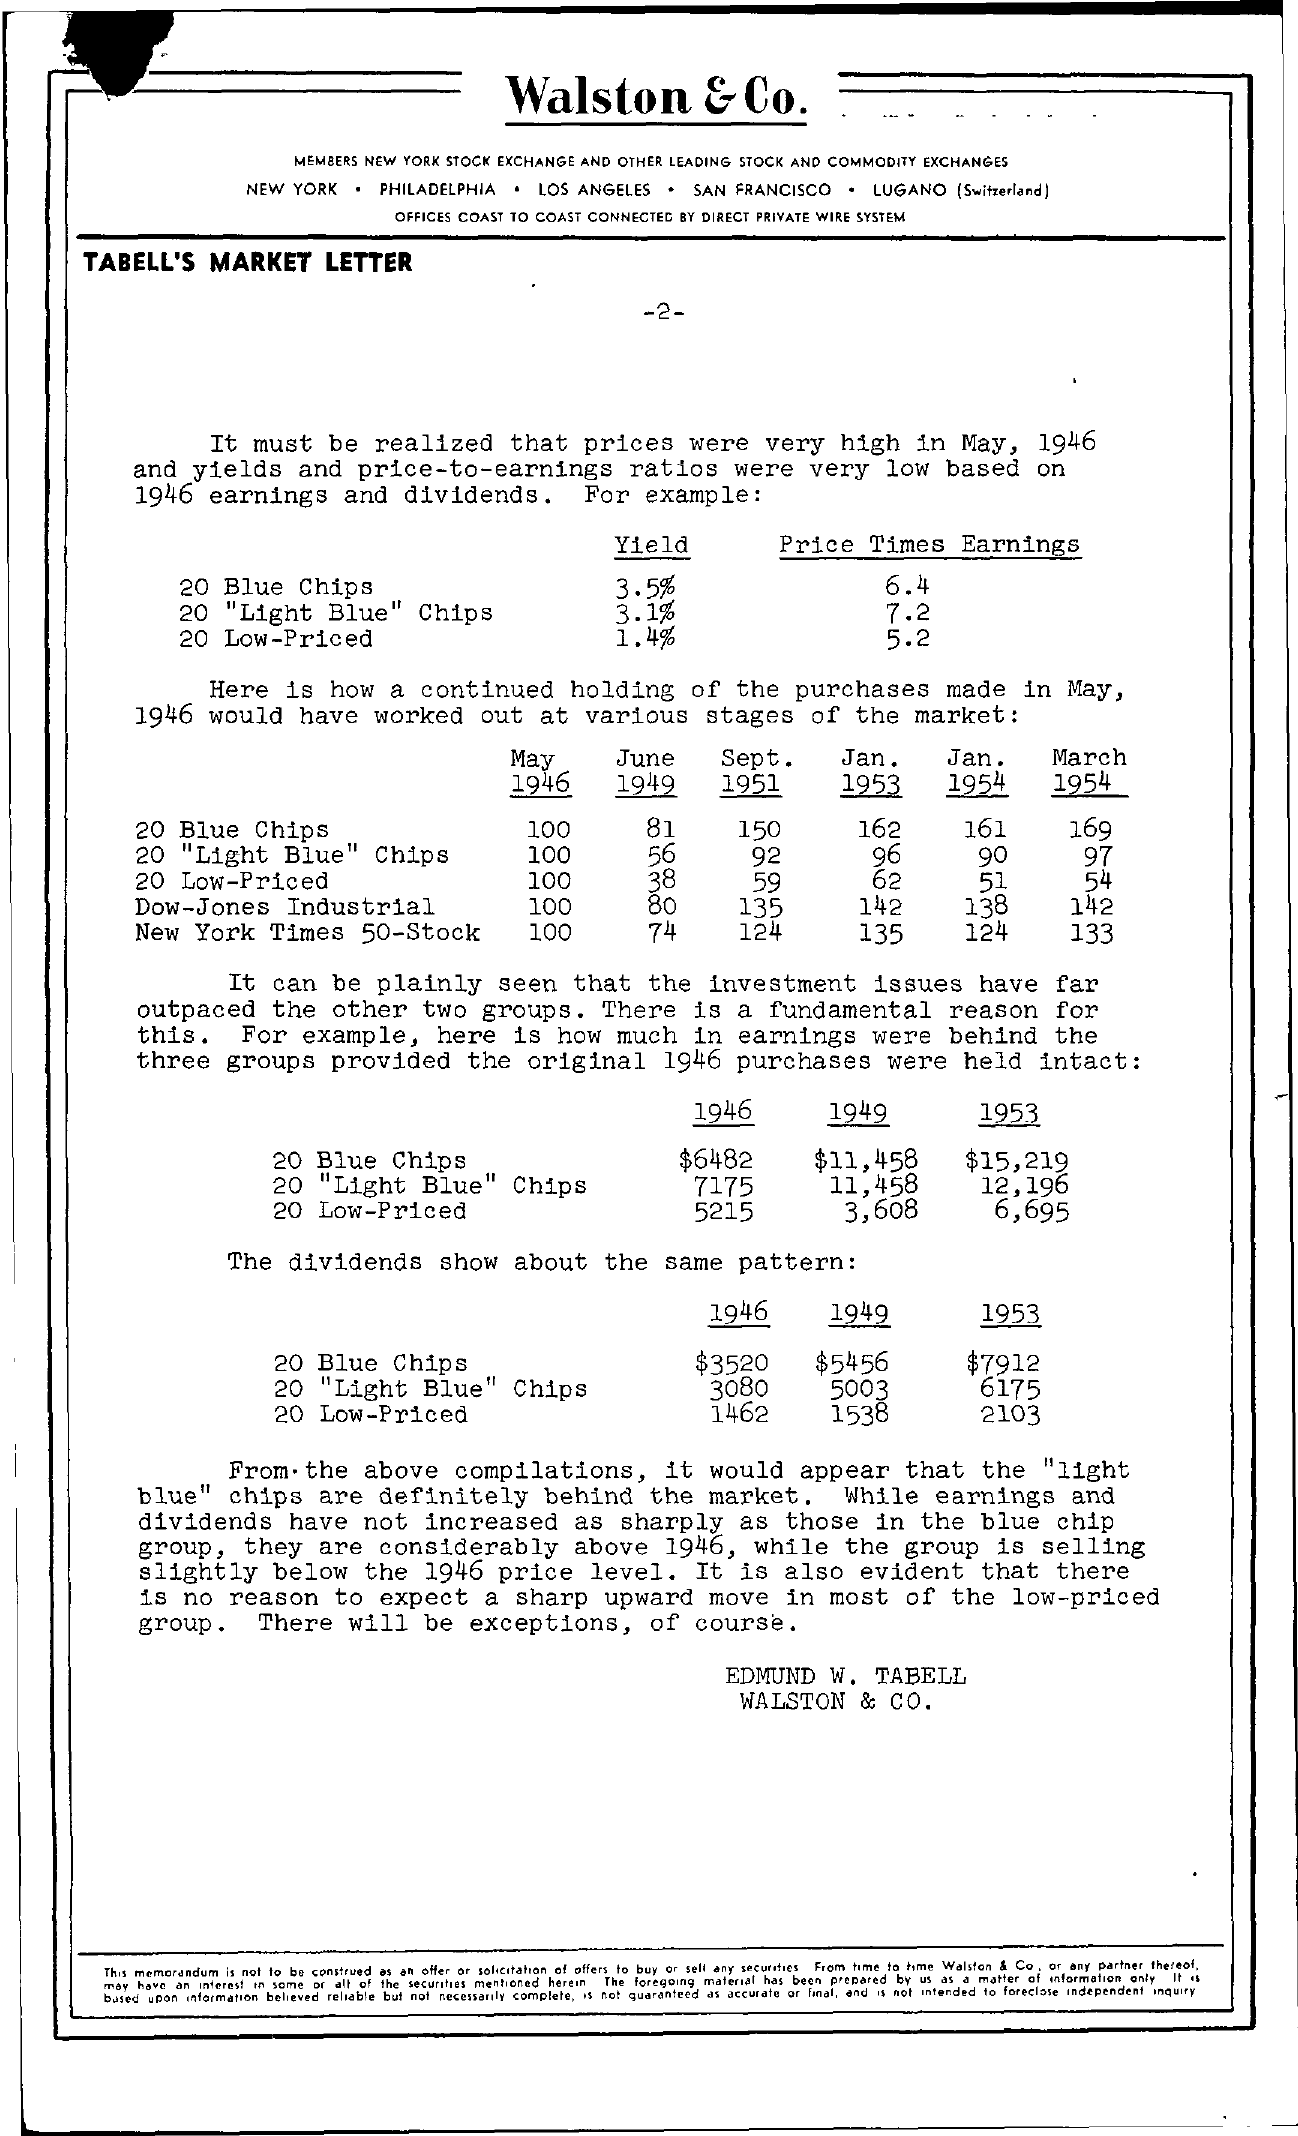 Tabell's Market Letter - March 12, 1954 page 2